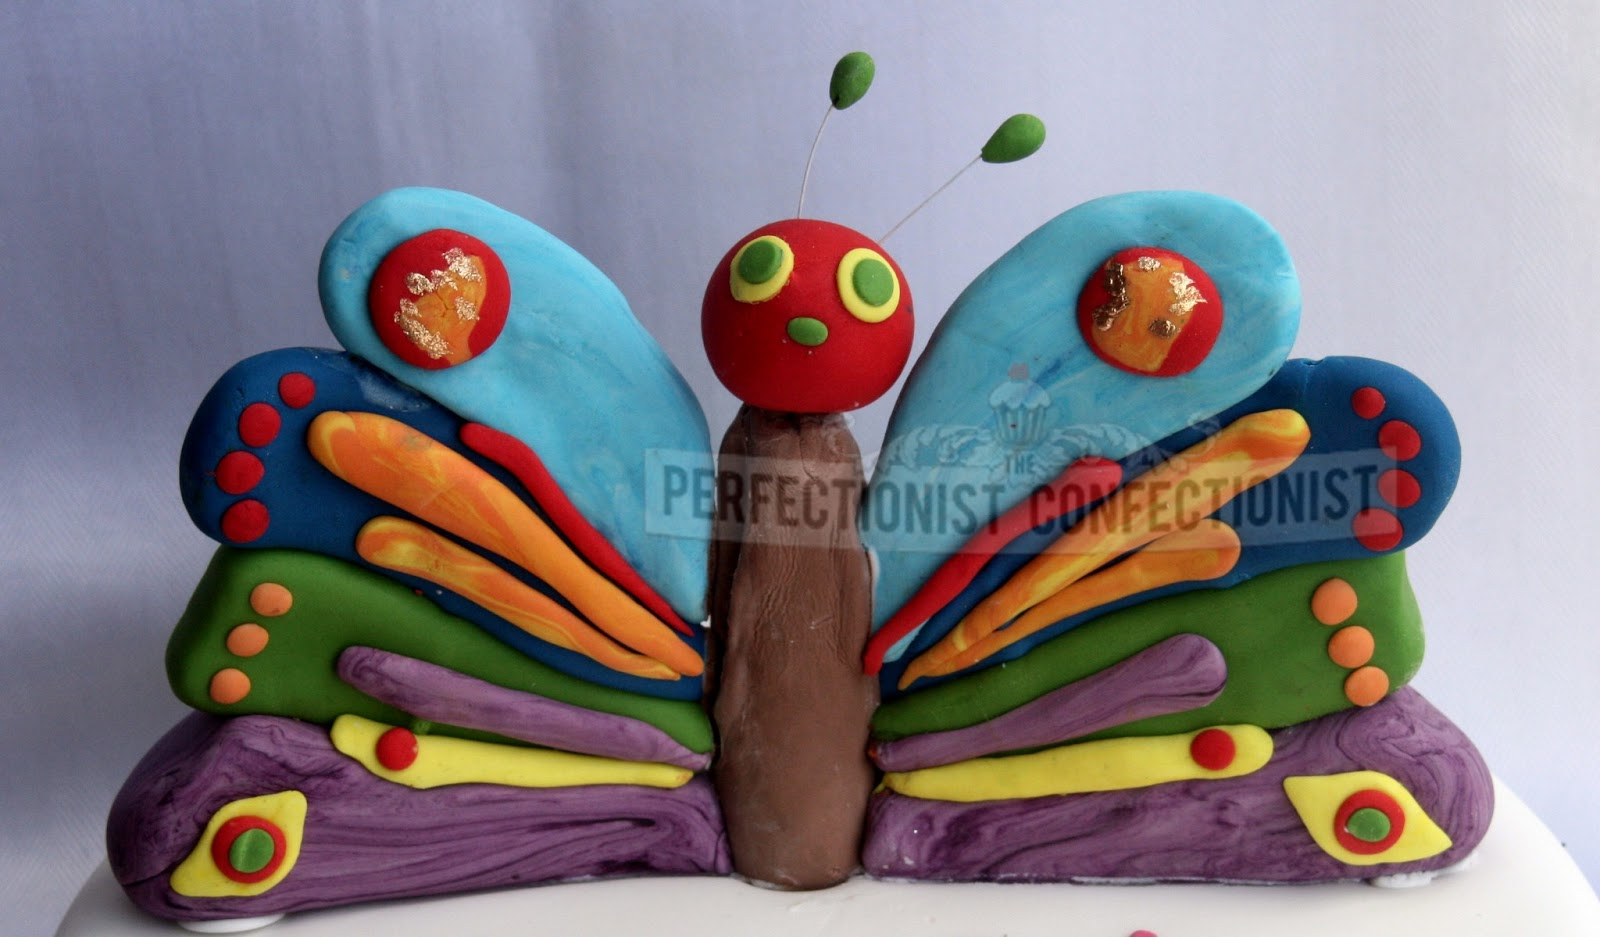 Very Hungry Caterpillar Butterfly Cake The Perfectionist Conf...